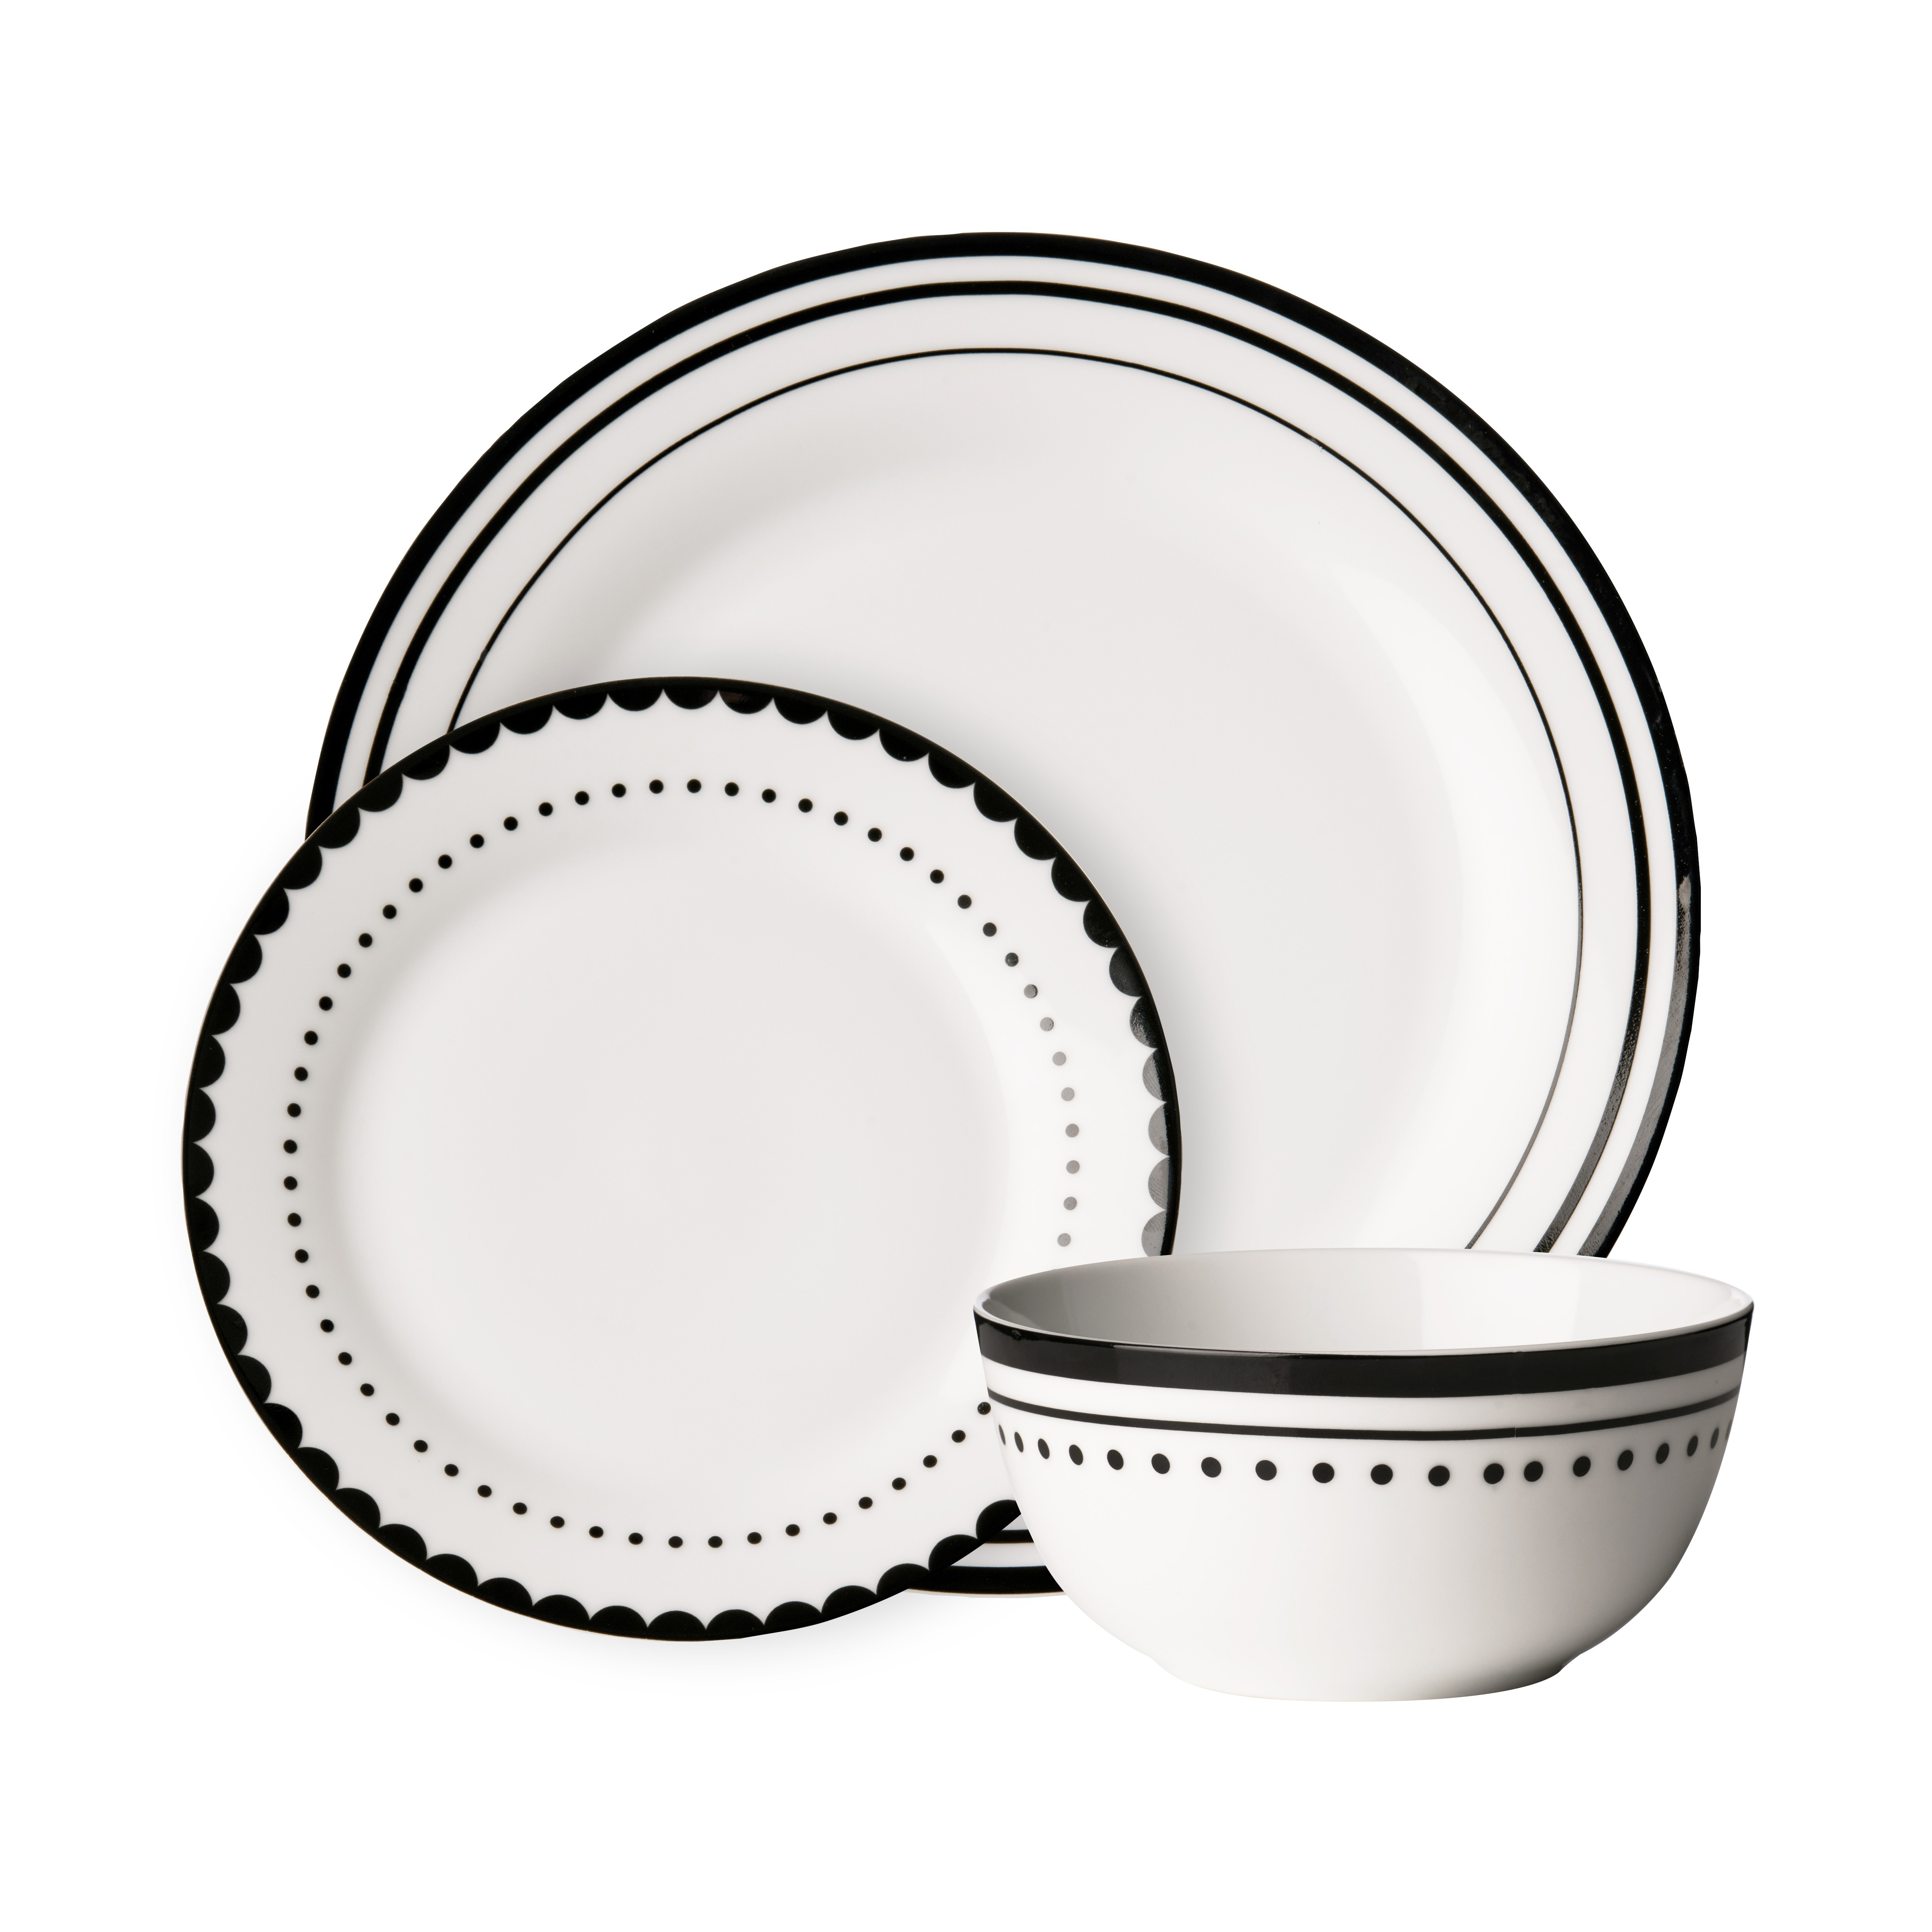 Avie 12pc Saturn Dinner Set Black Porcelain